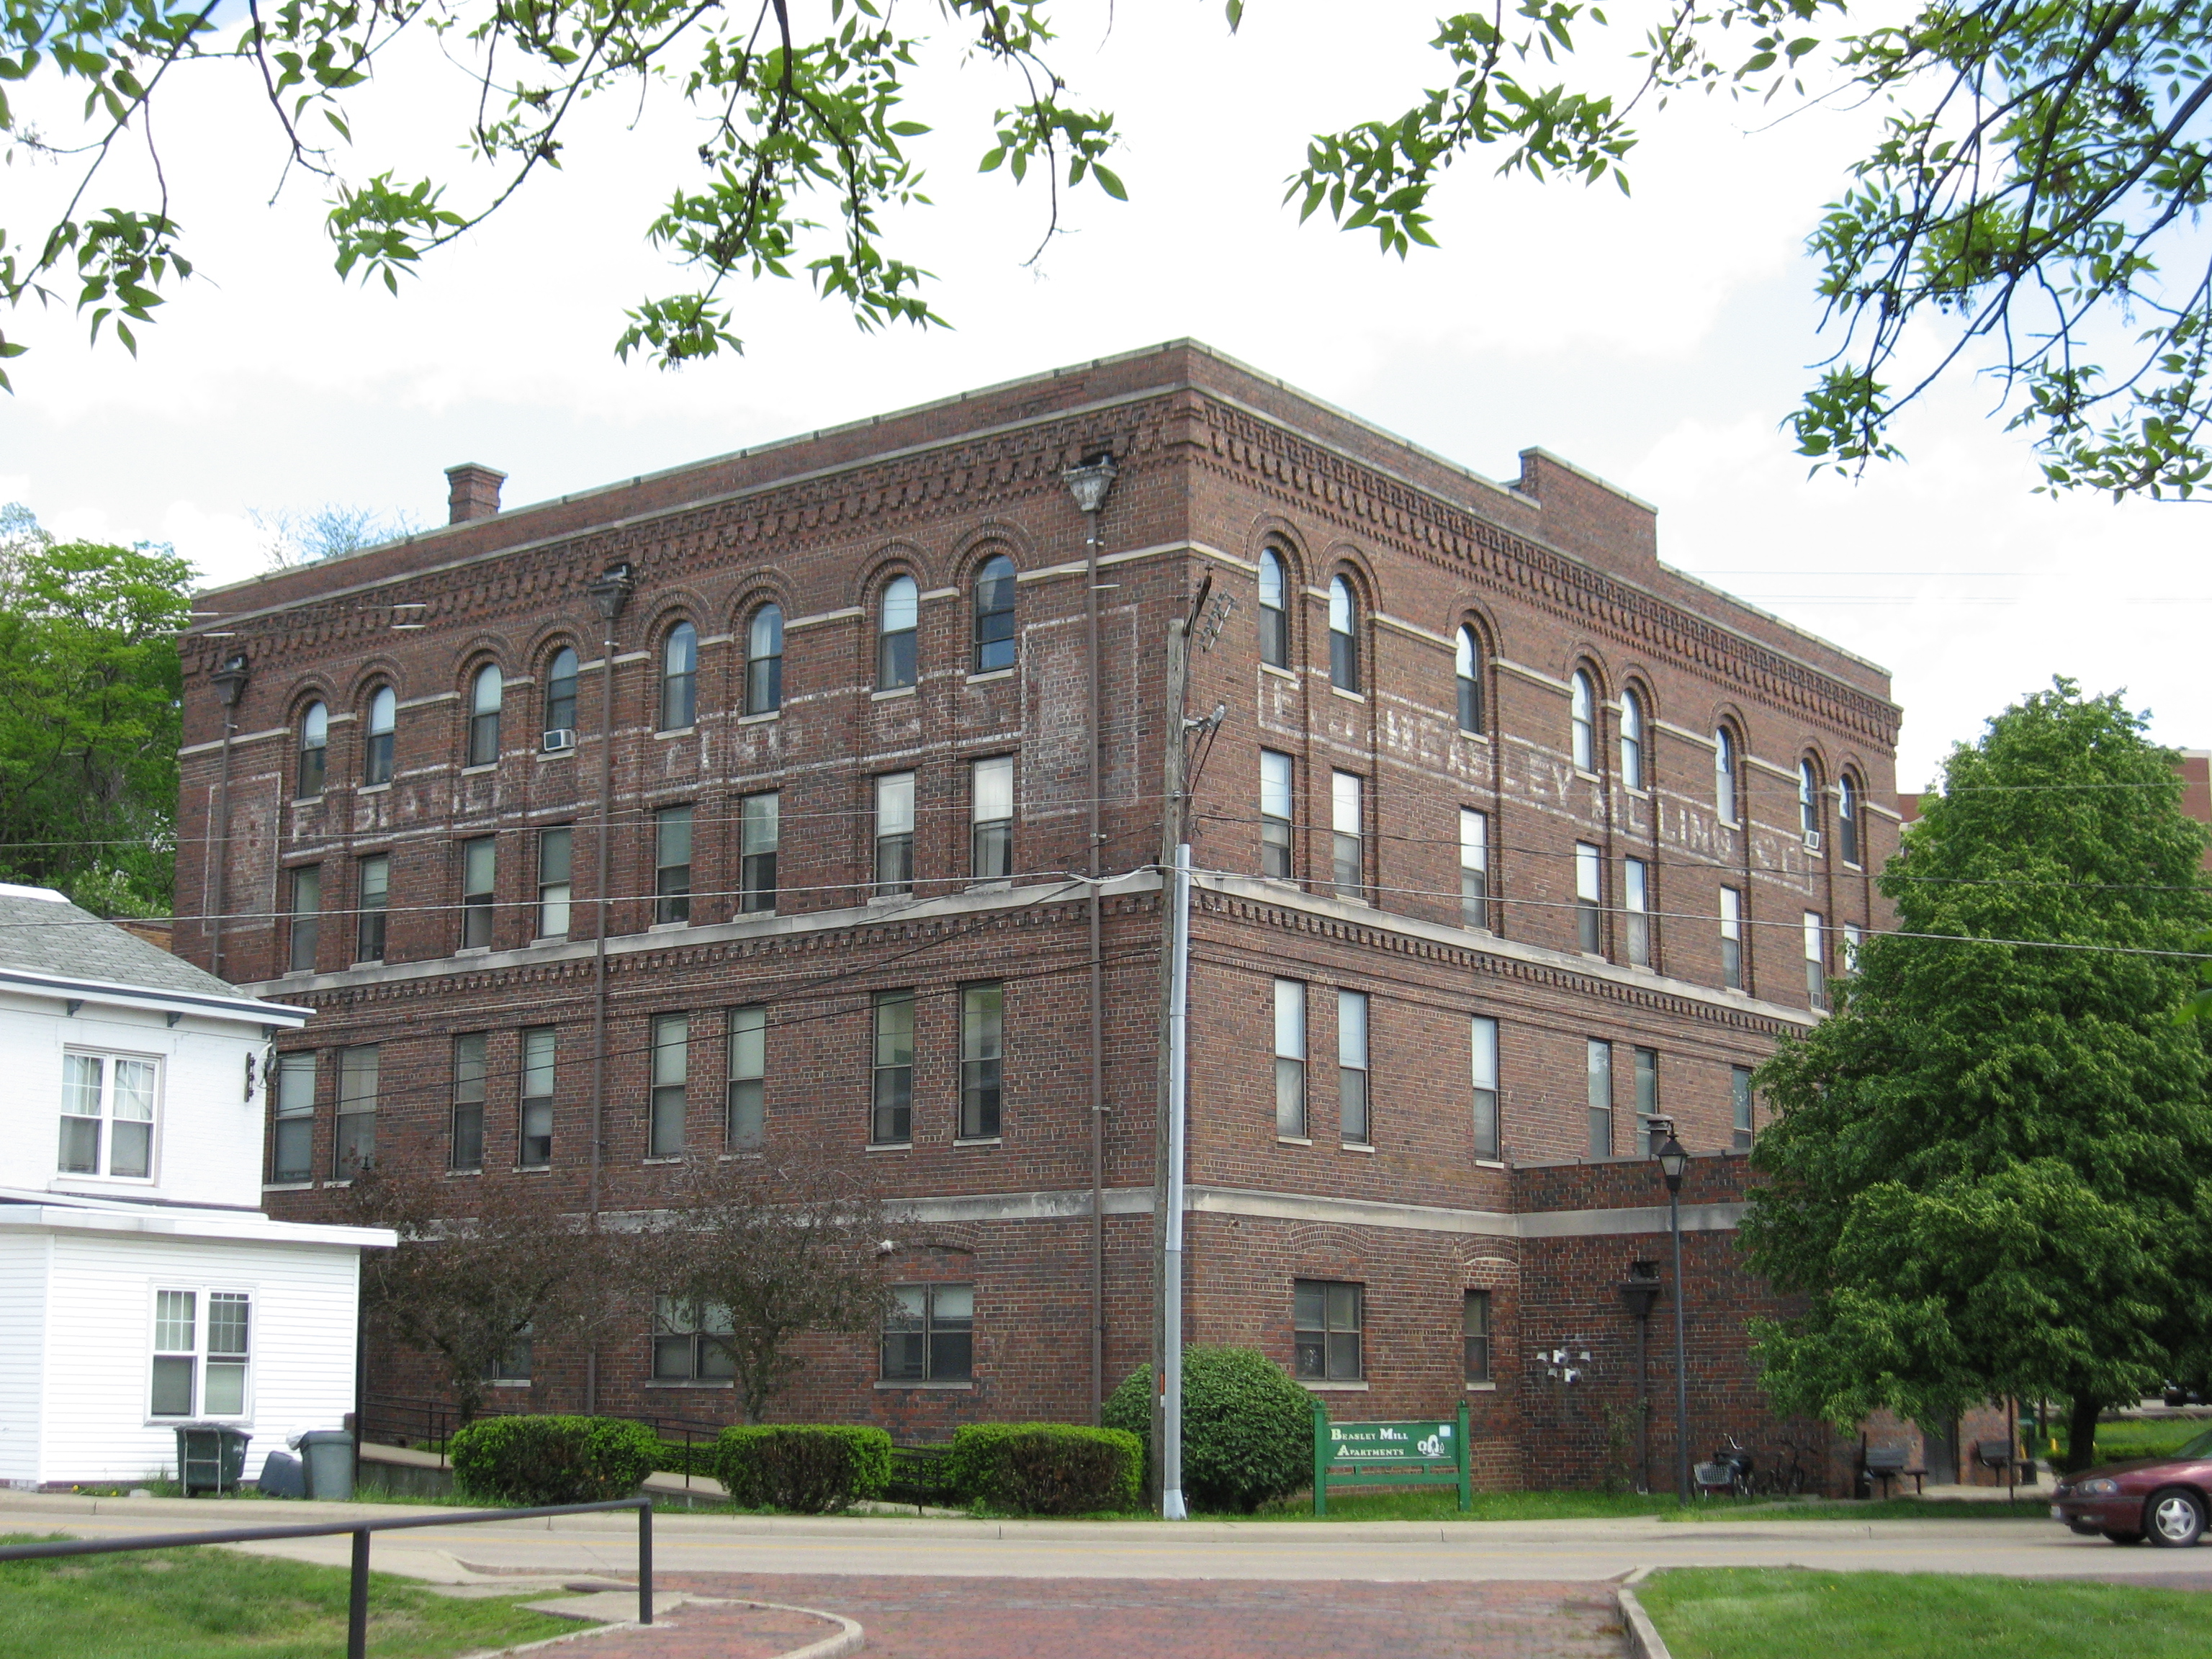 Athens (OH) United States  City new picture : Beasley Building Athens OH USA Wikimedia Commons